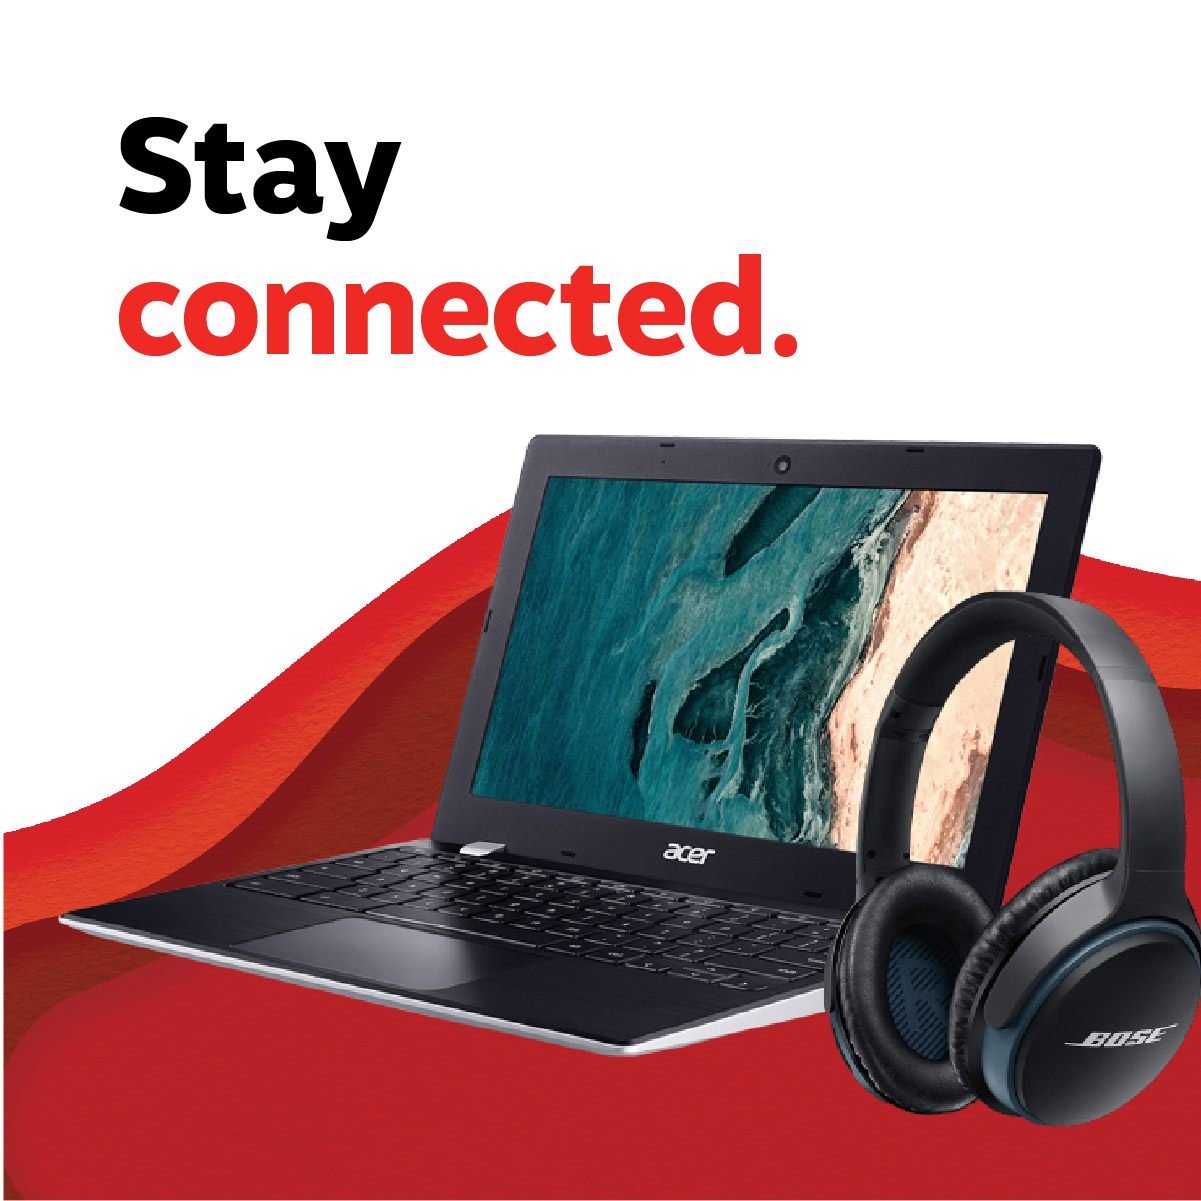 Staples keeps you connected with the best Labor Day sales and discounts